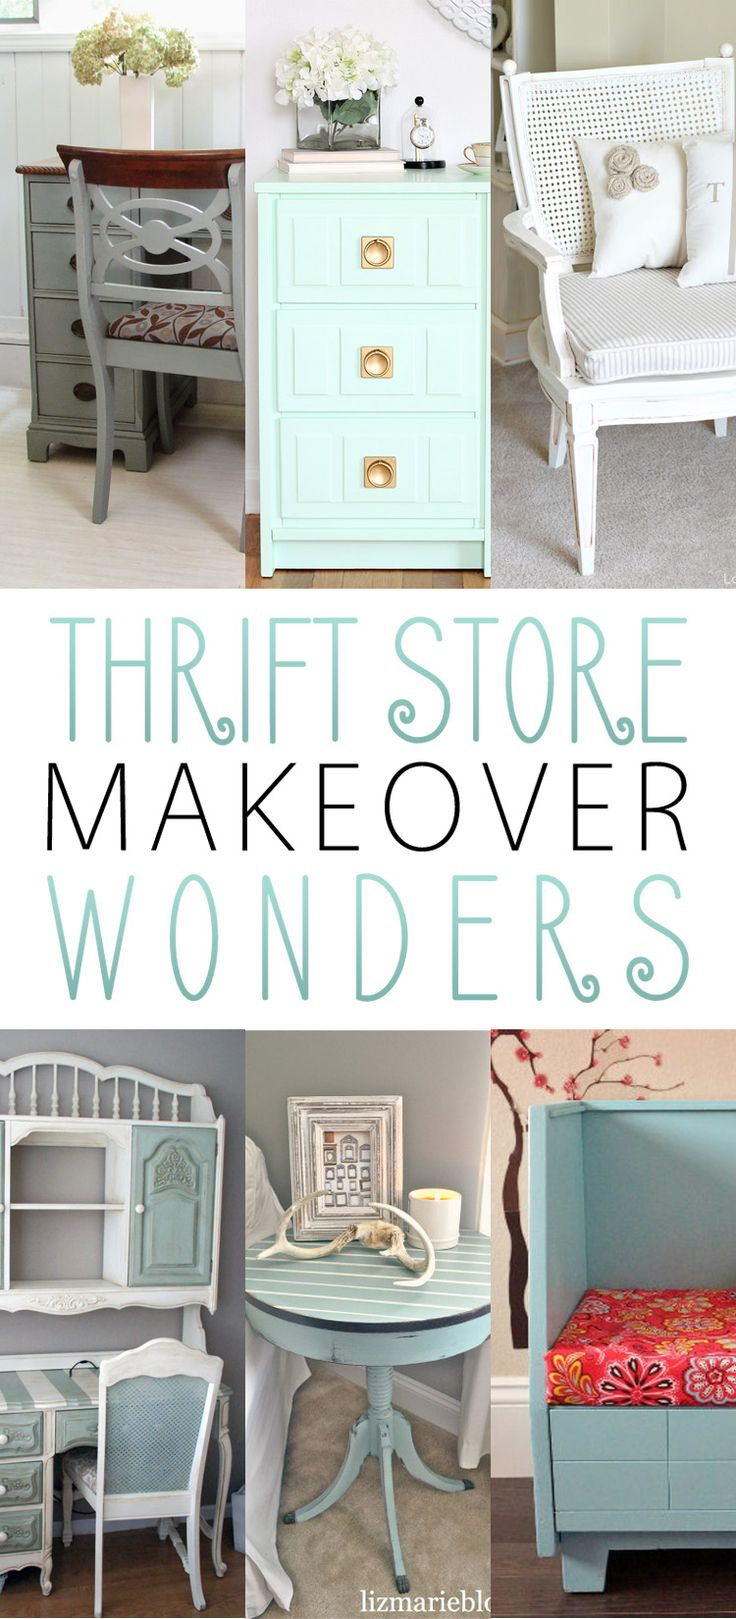 Thrift Store Makeover Wonders - The Cottage Market. Also, take a look at this AWSOME NEW THRIFT STORE APP at http://xthrift.com